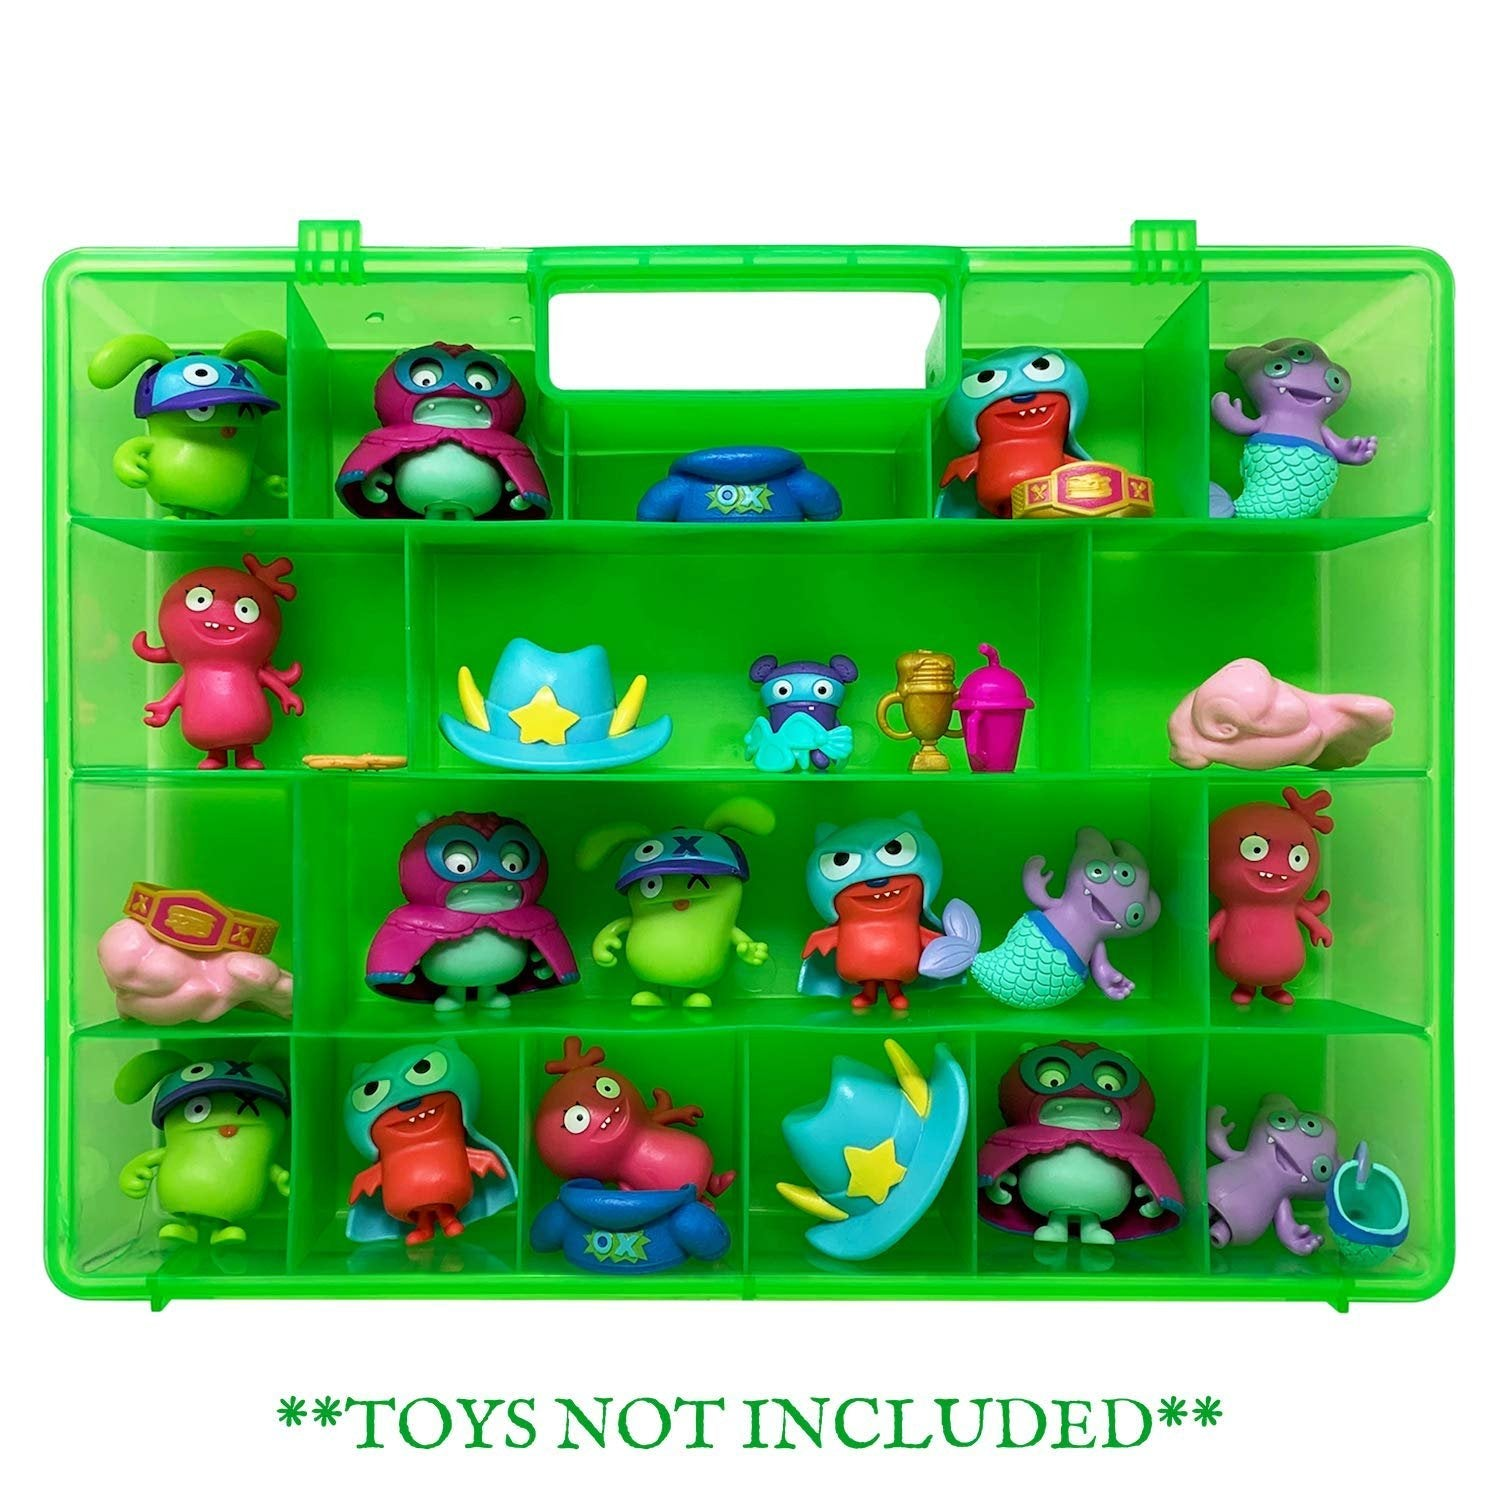 Life Made Better Case, Kid-Green Carrying Box with Compartments, Compatible with UglyDolls Figures, Fits Multiple Toys & Accessories Storage, Created